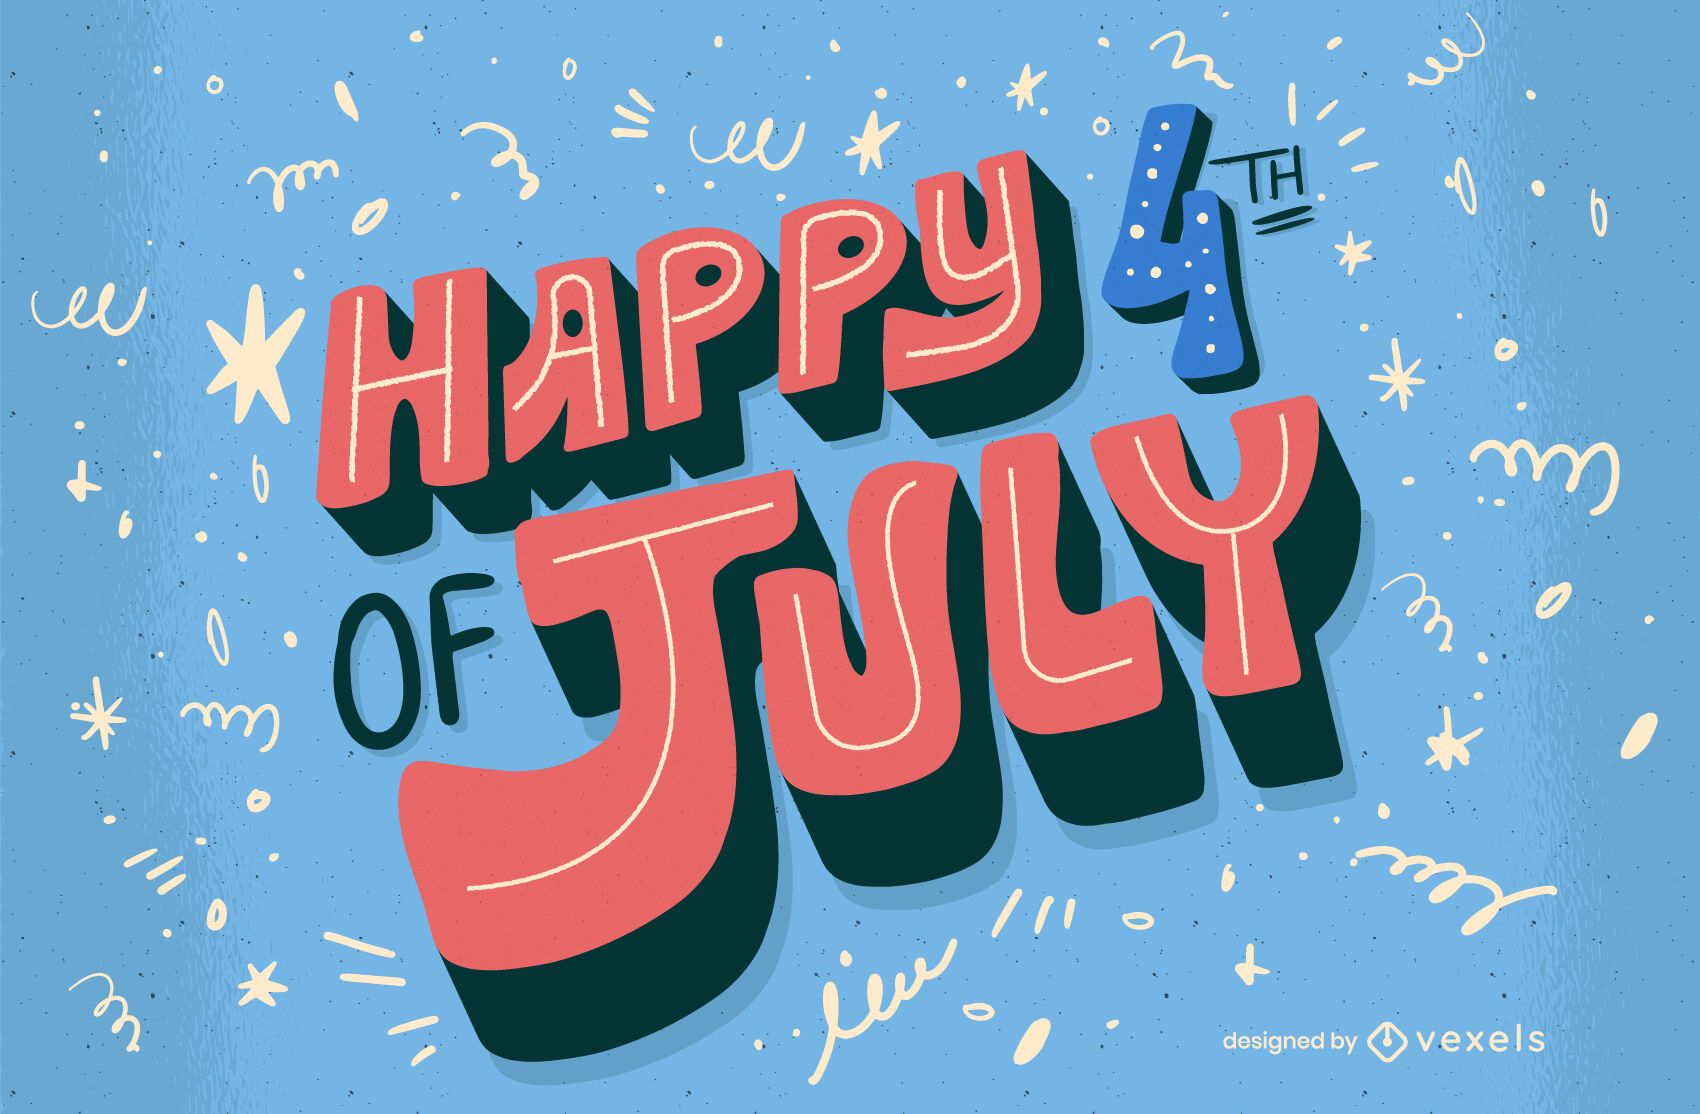 Happy fourth of july celebration lettering